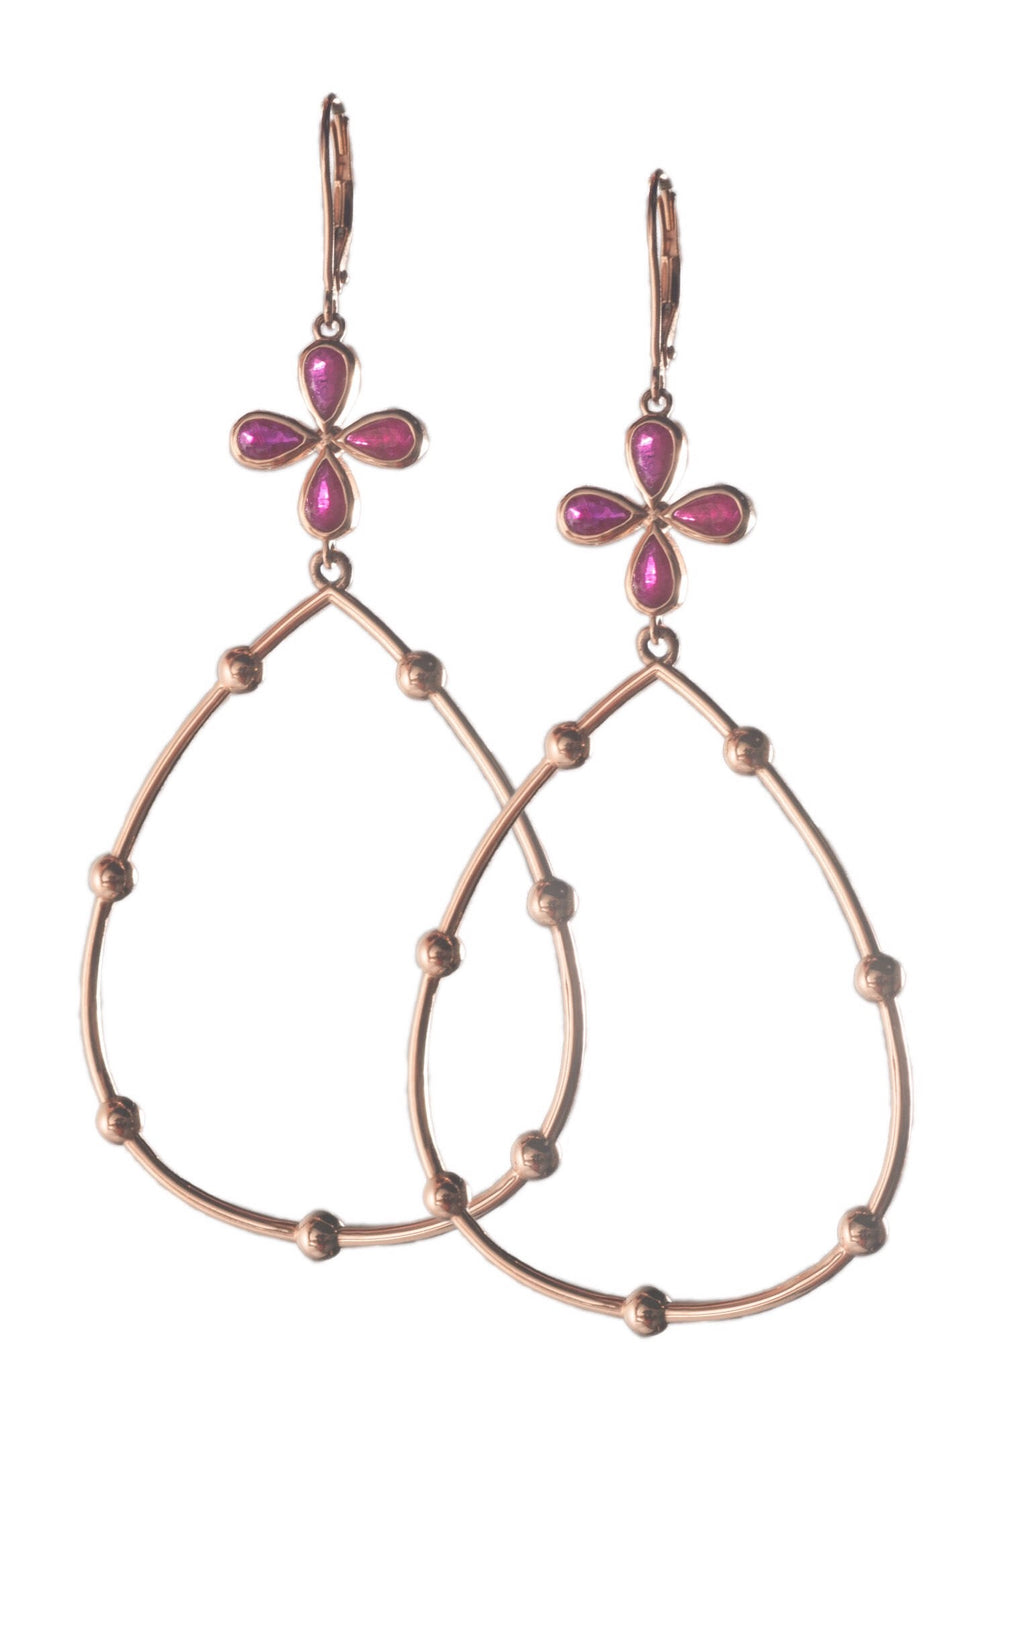 Ruby Hoop Earrings set in 14k Rose Gold